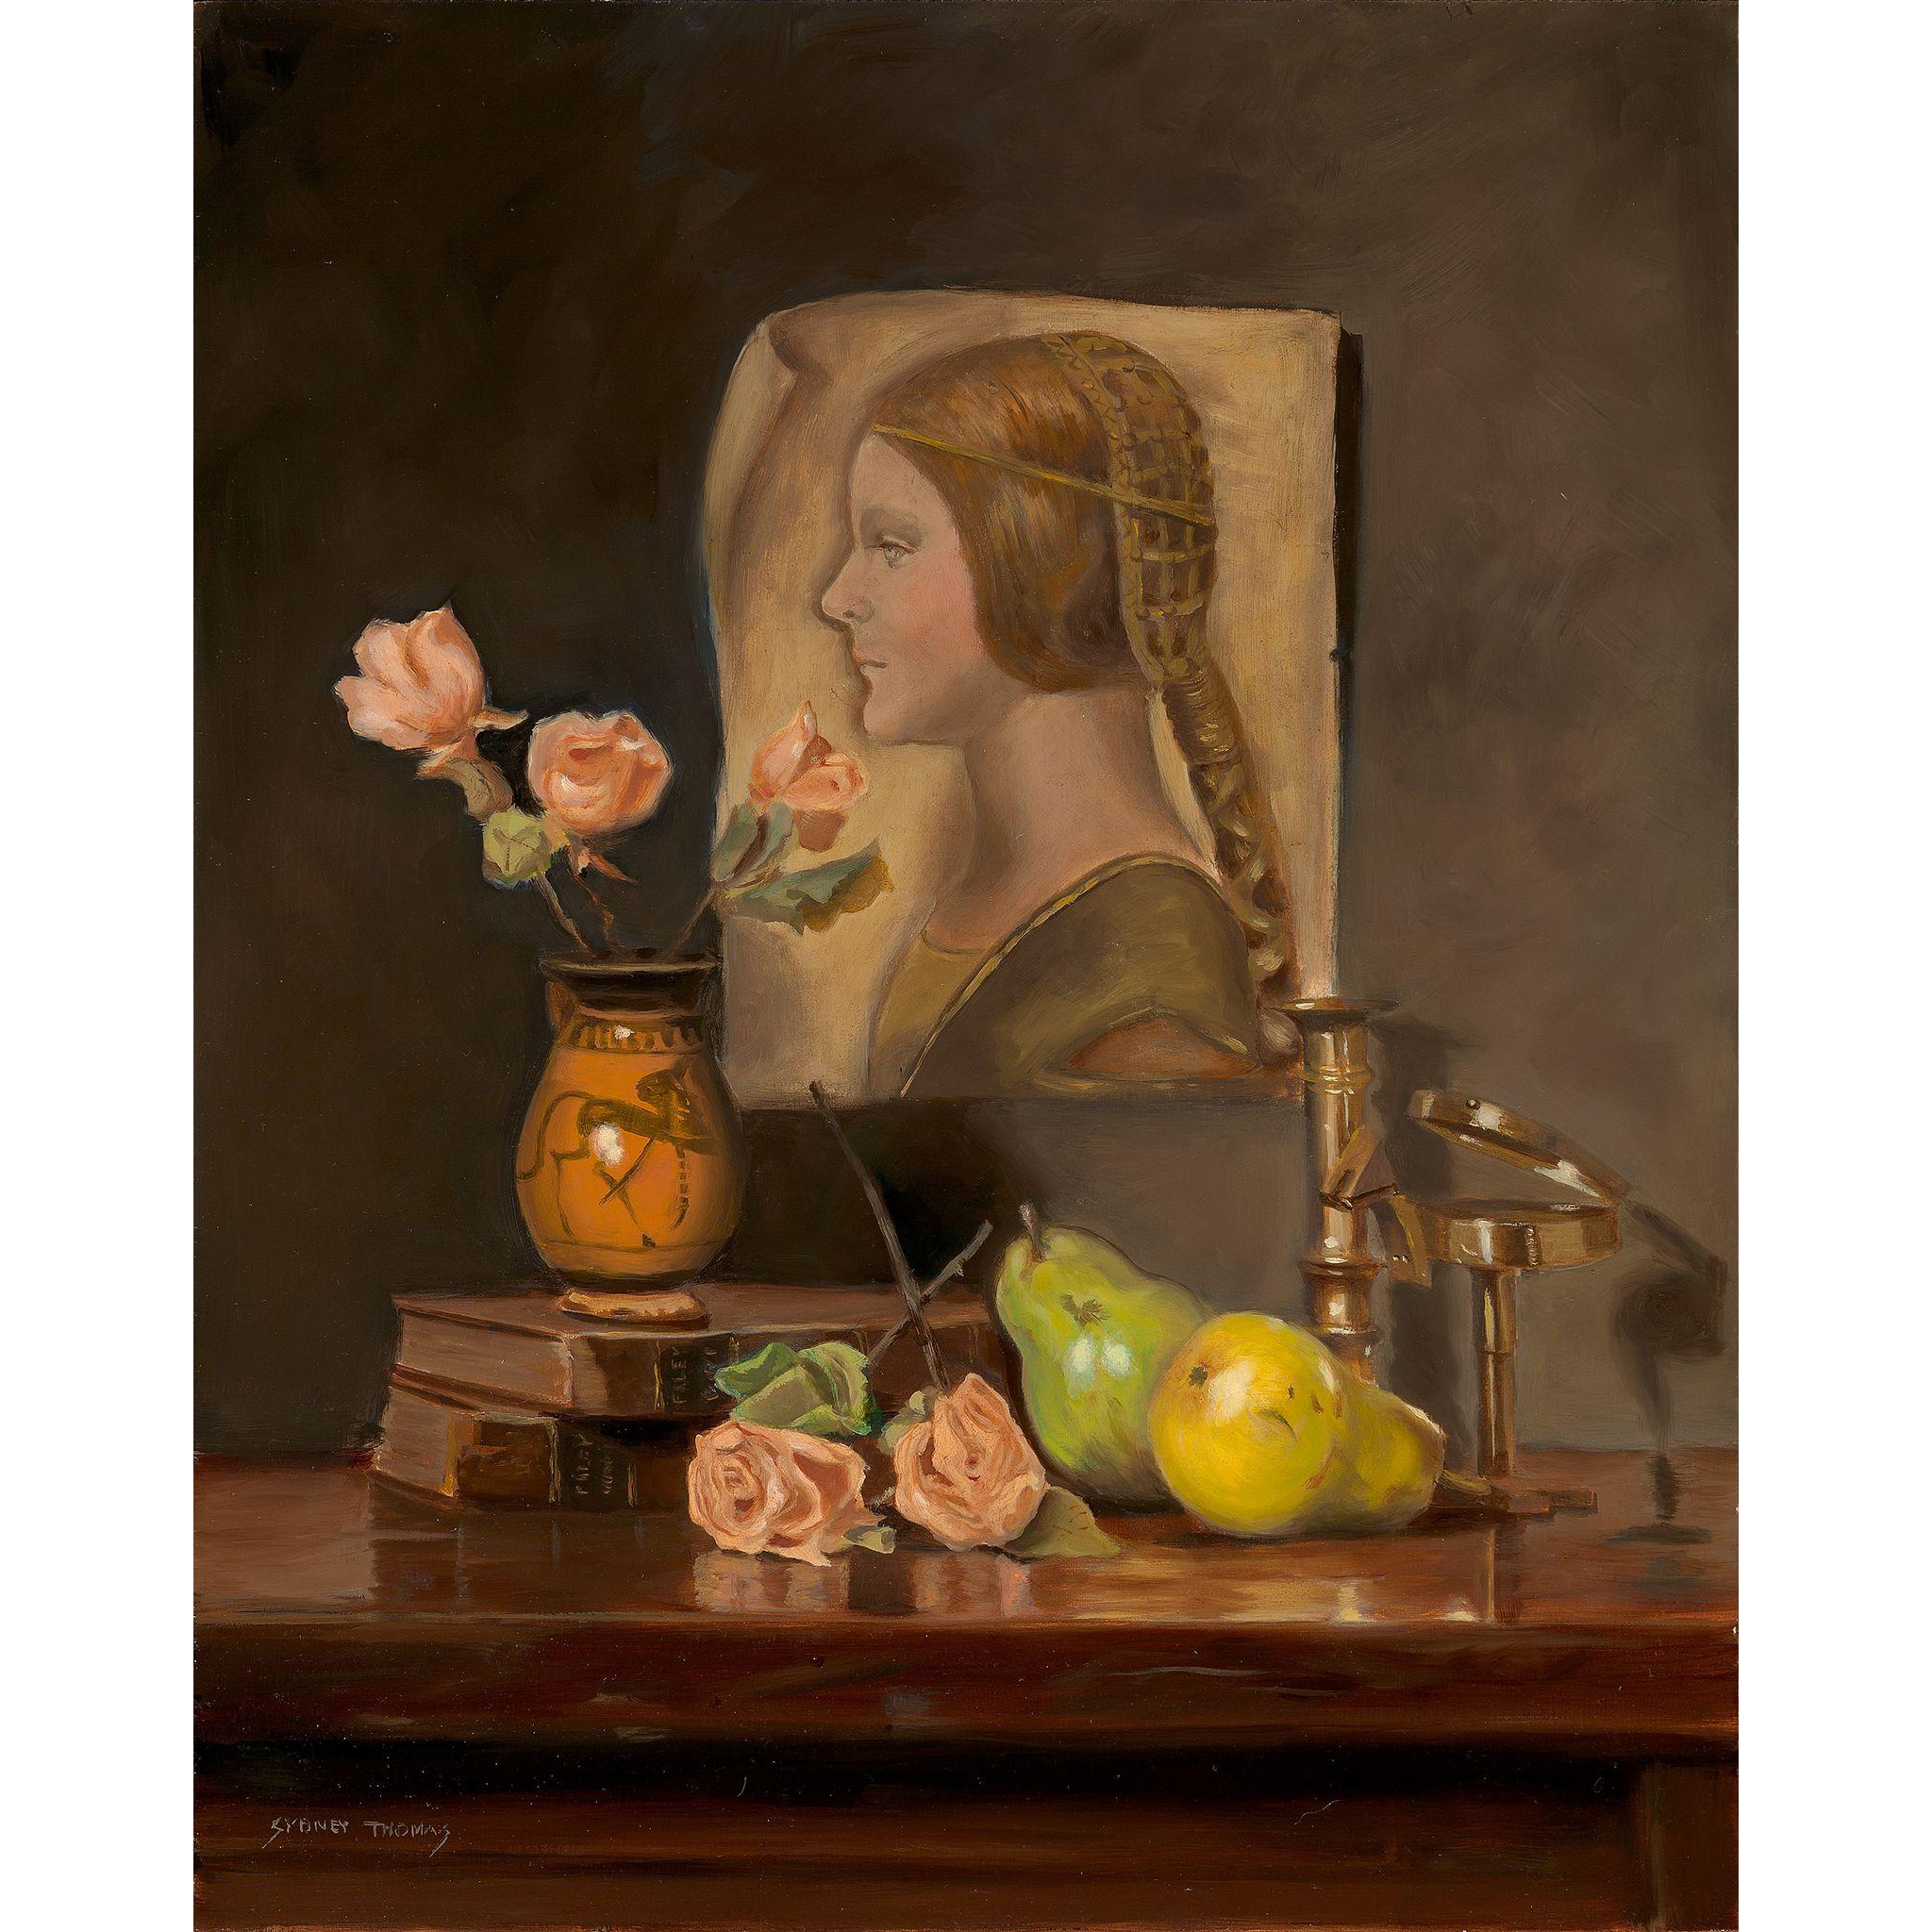 Sydney Thomas Oil Painting Still Life - In Search of Lost Time